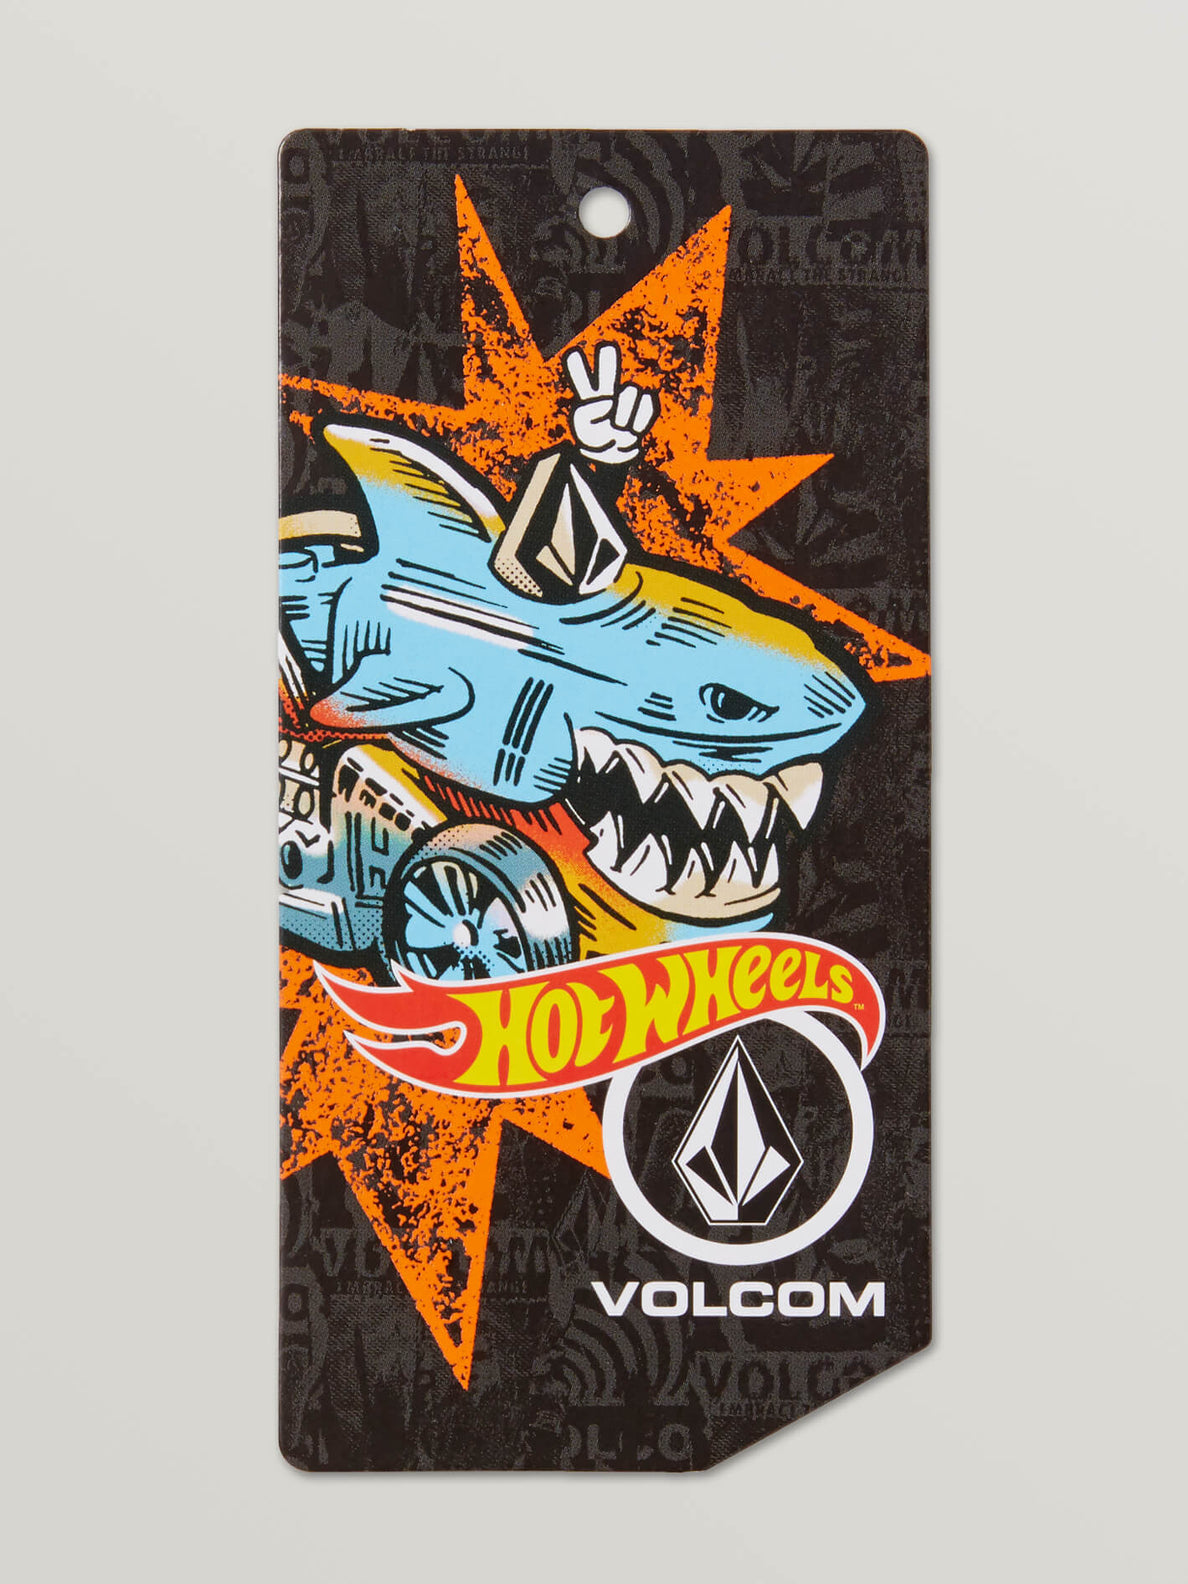 Little Boys Hot Wheels'Ñ¢ X Volcom Long Sleeve Tee In MISSING Tag MISSING b6dad5cd-01